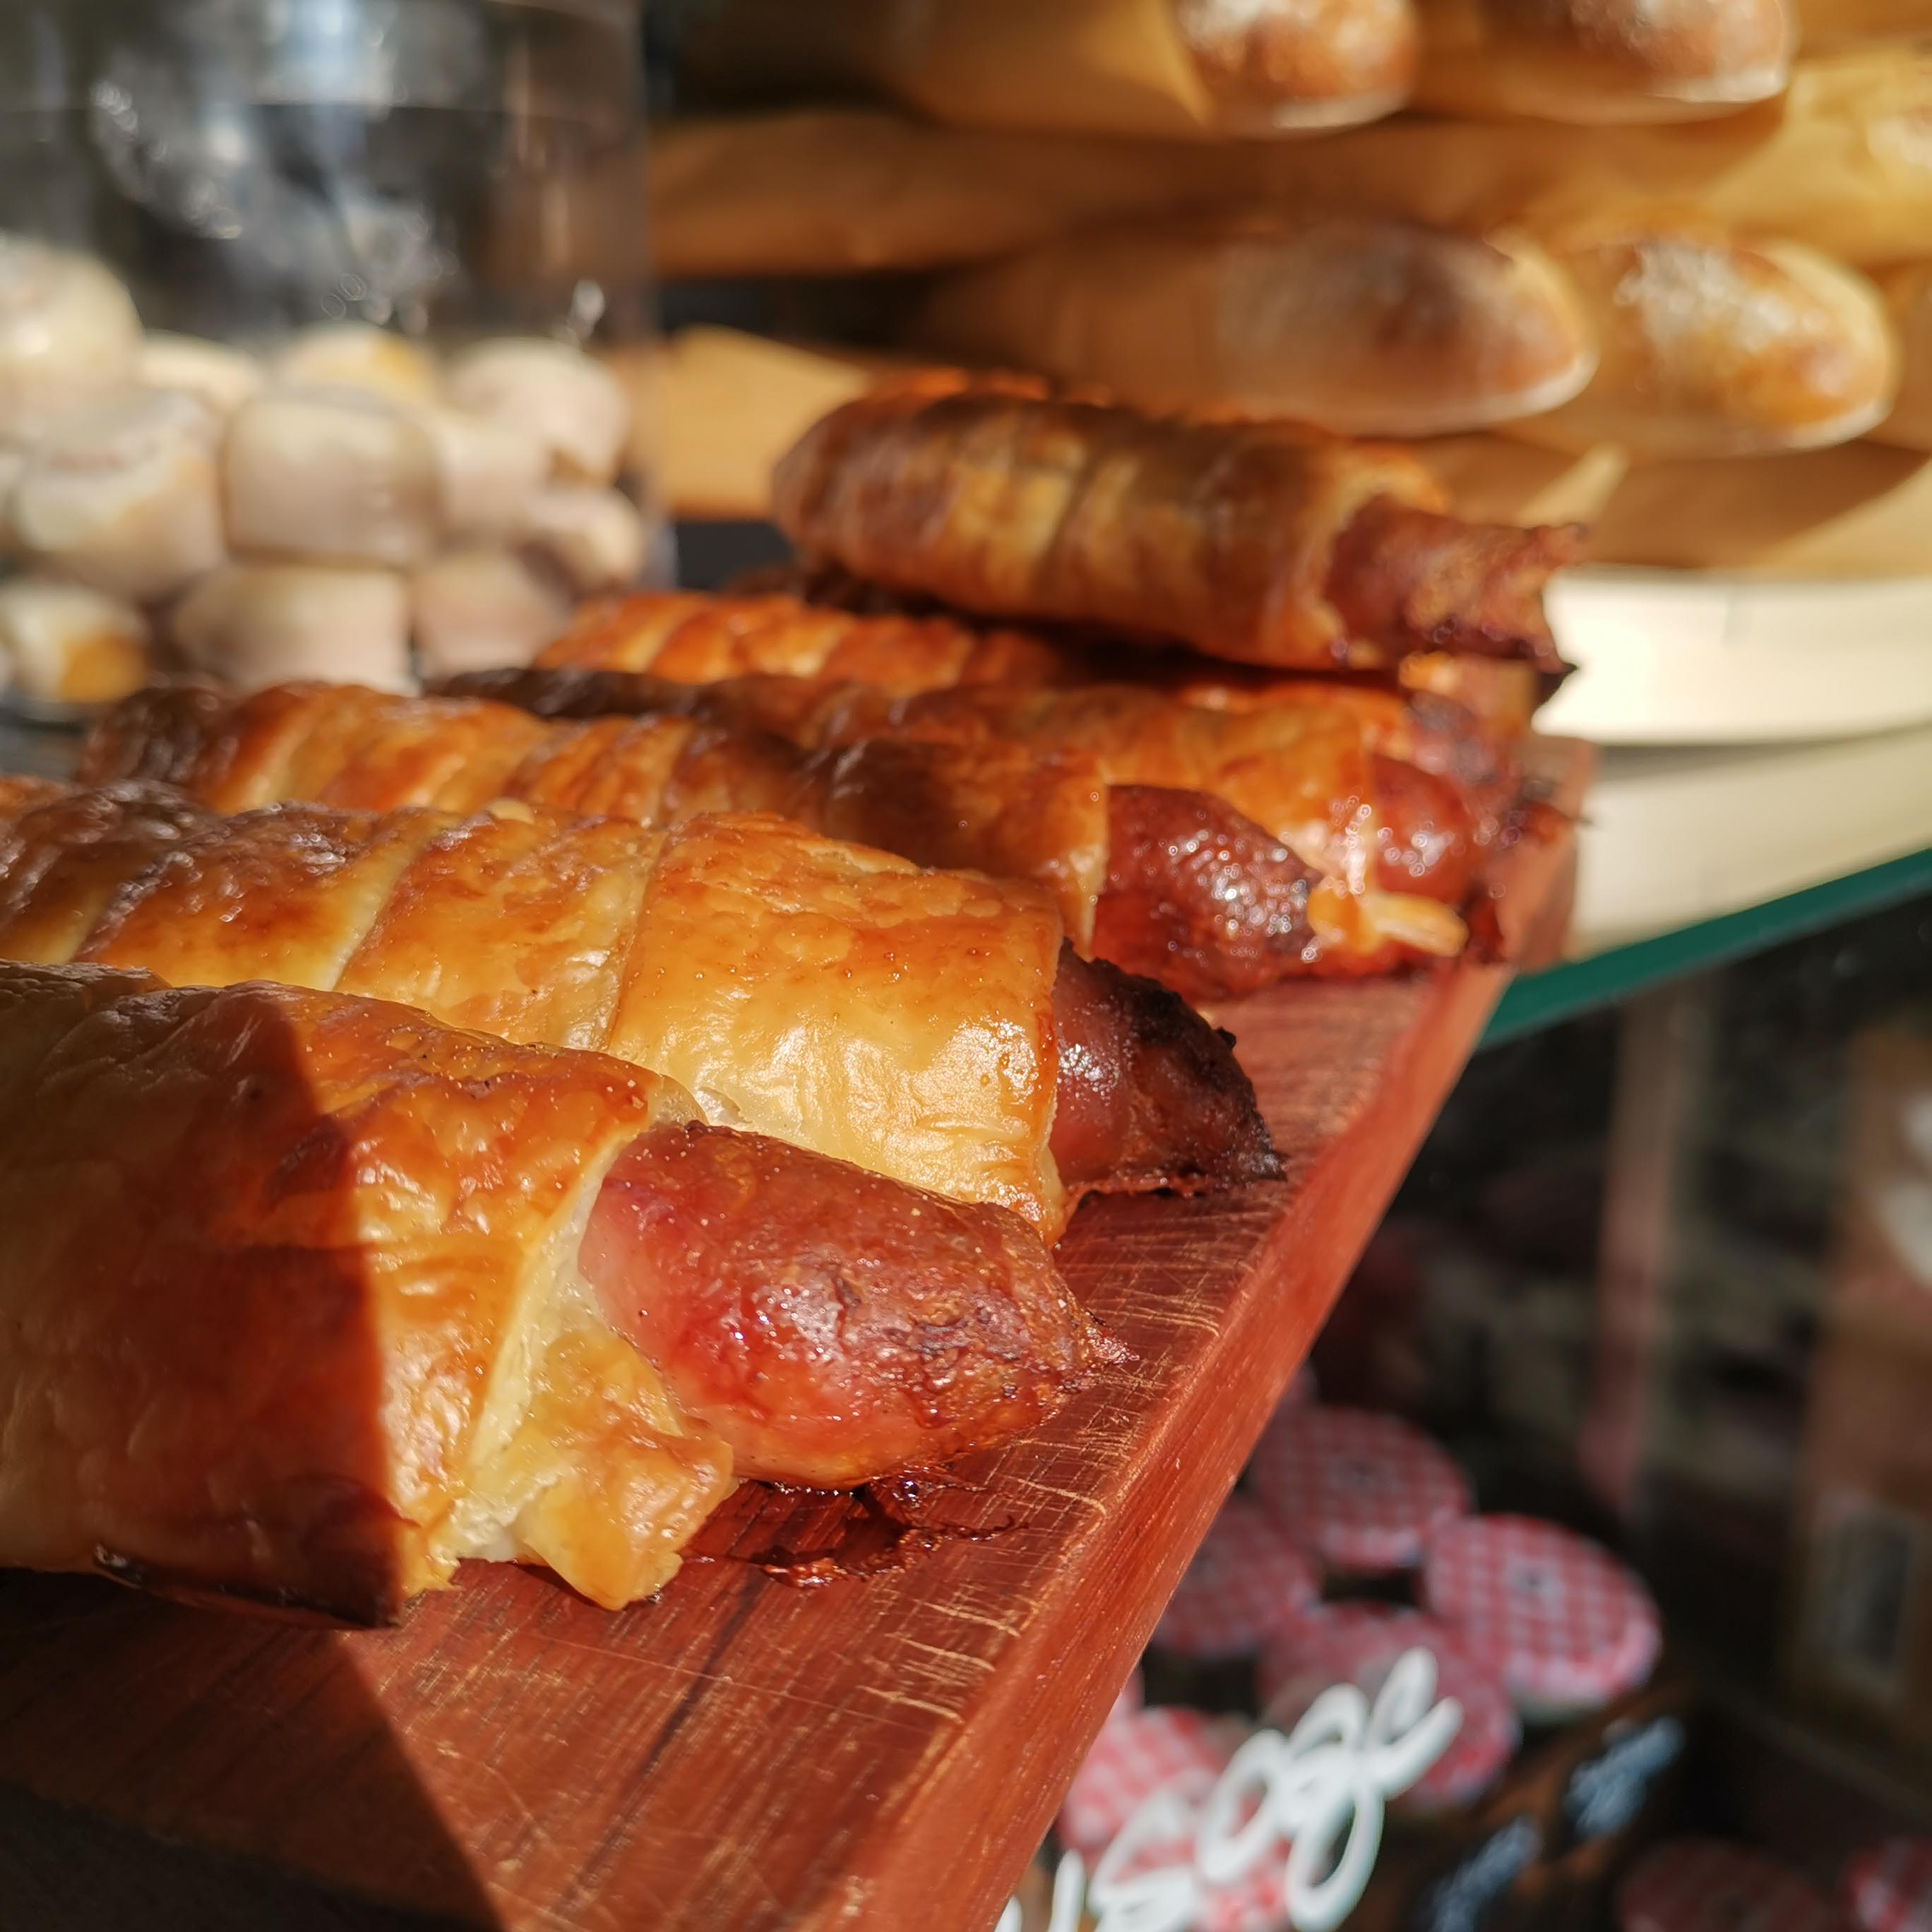 Pastry wrapped sausages on wooden board